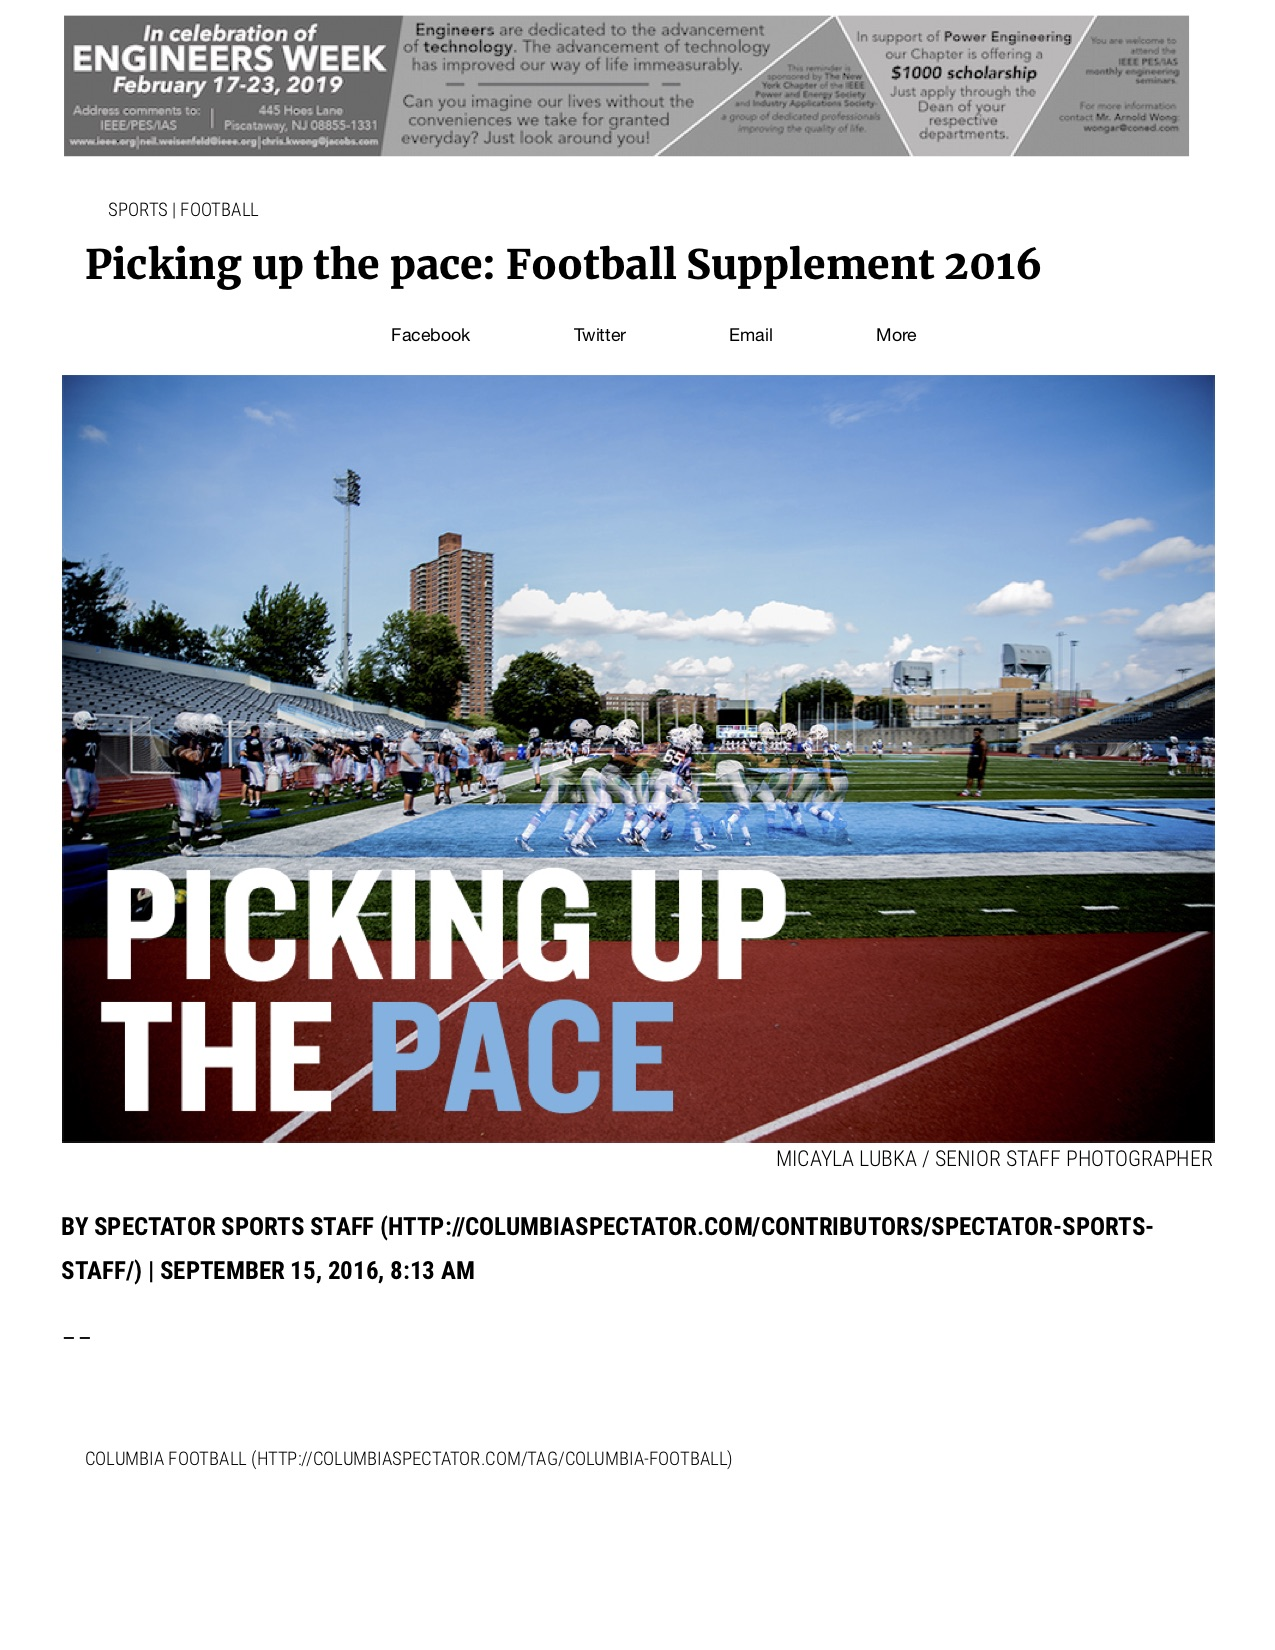 Picking up the pace- Football Supplement 2016 - Columbia Daily Spectator.jpg